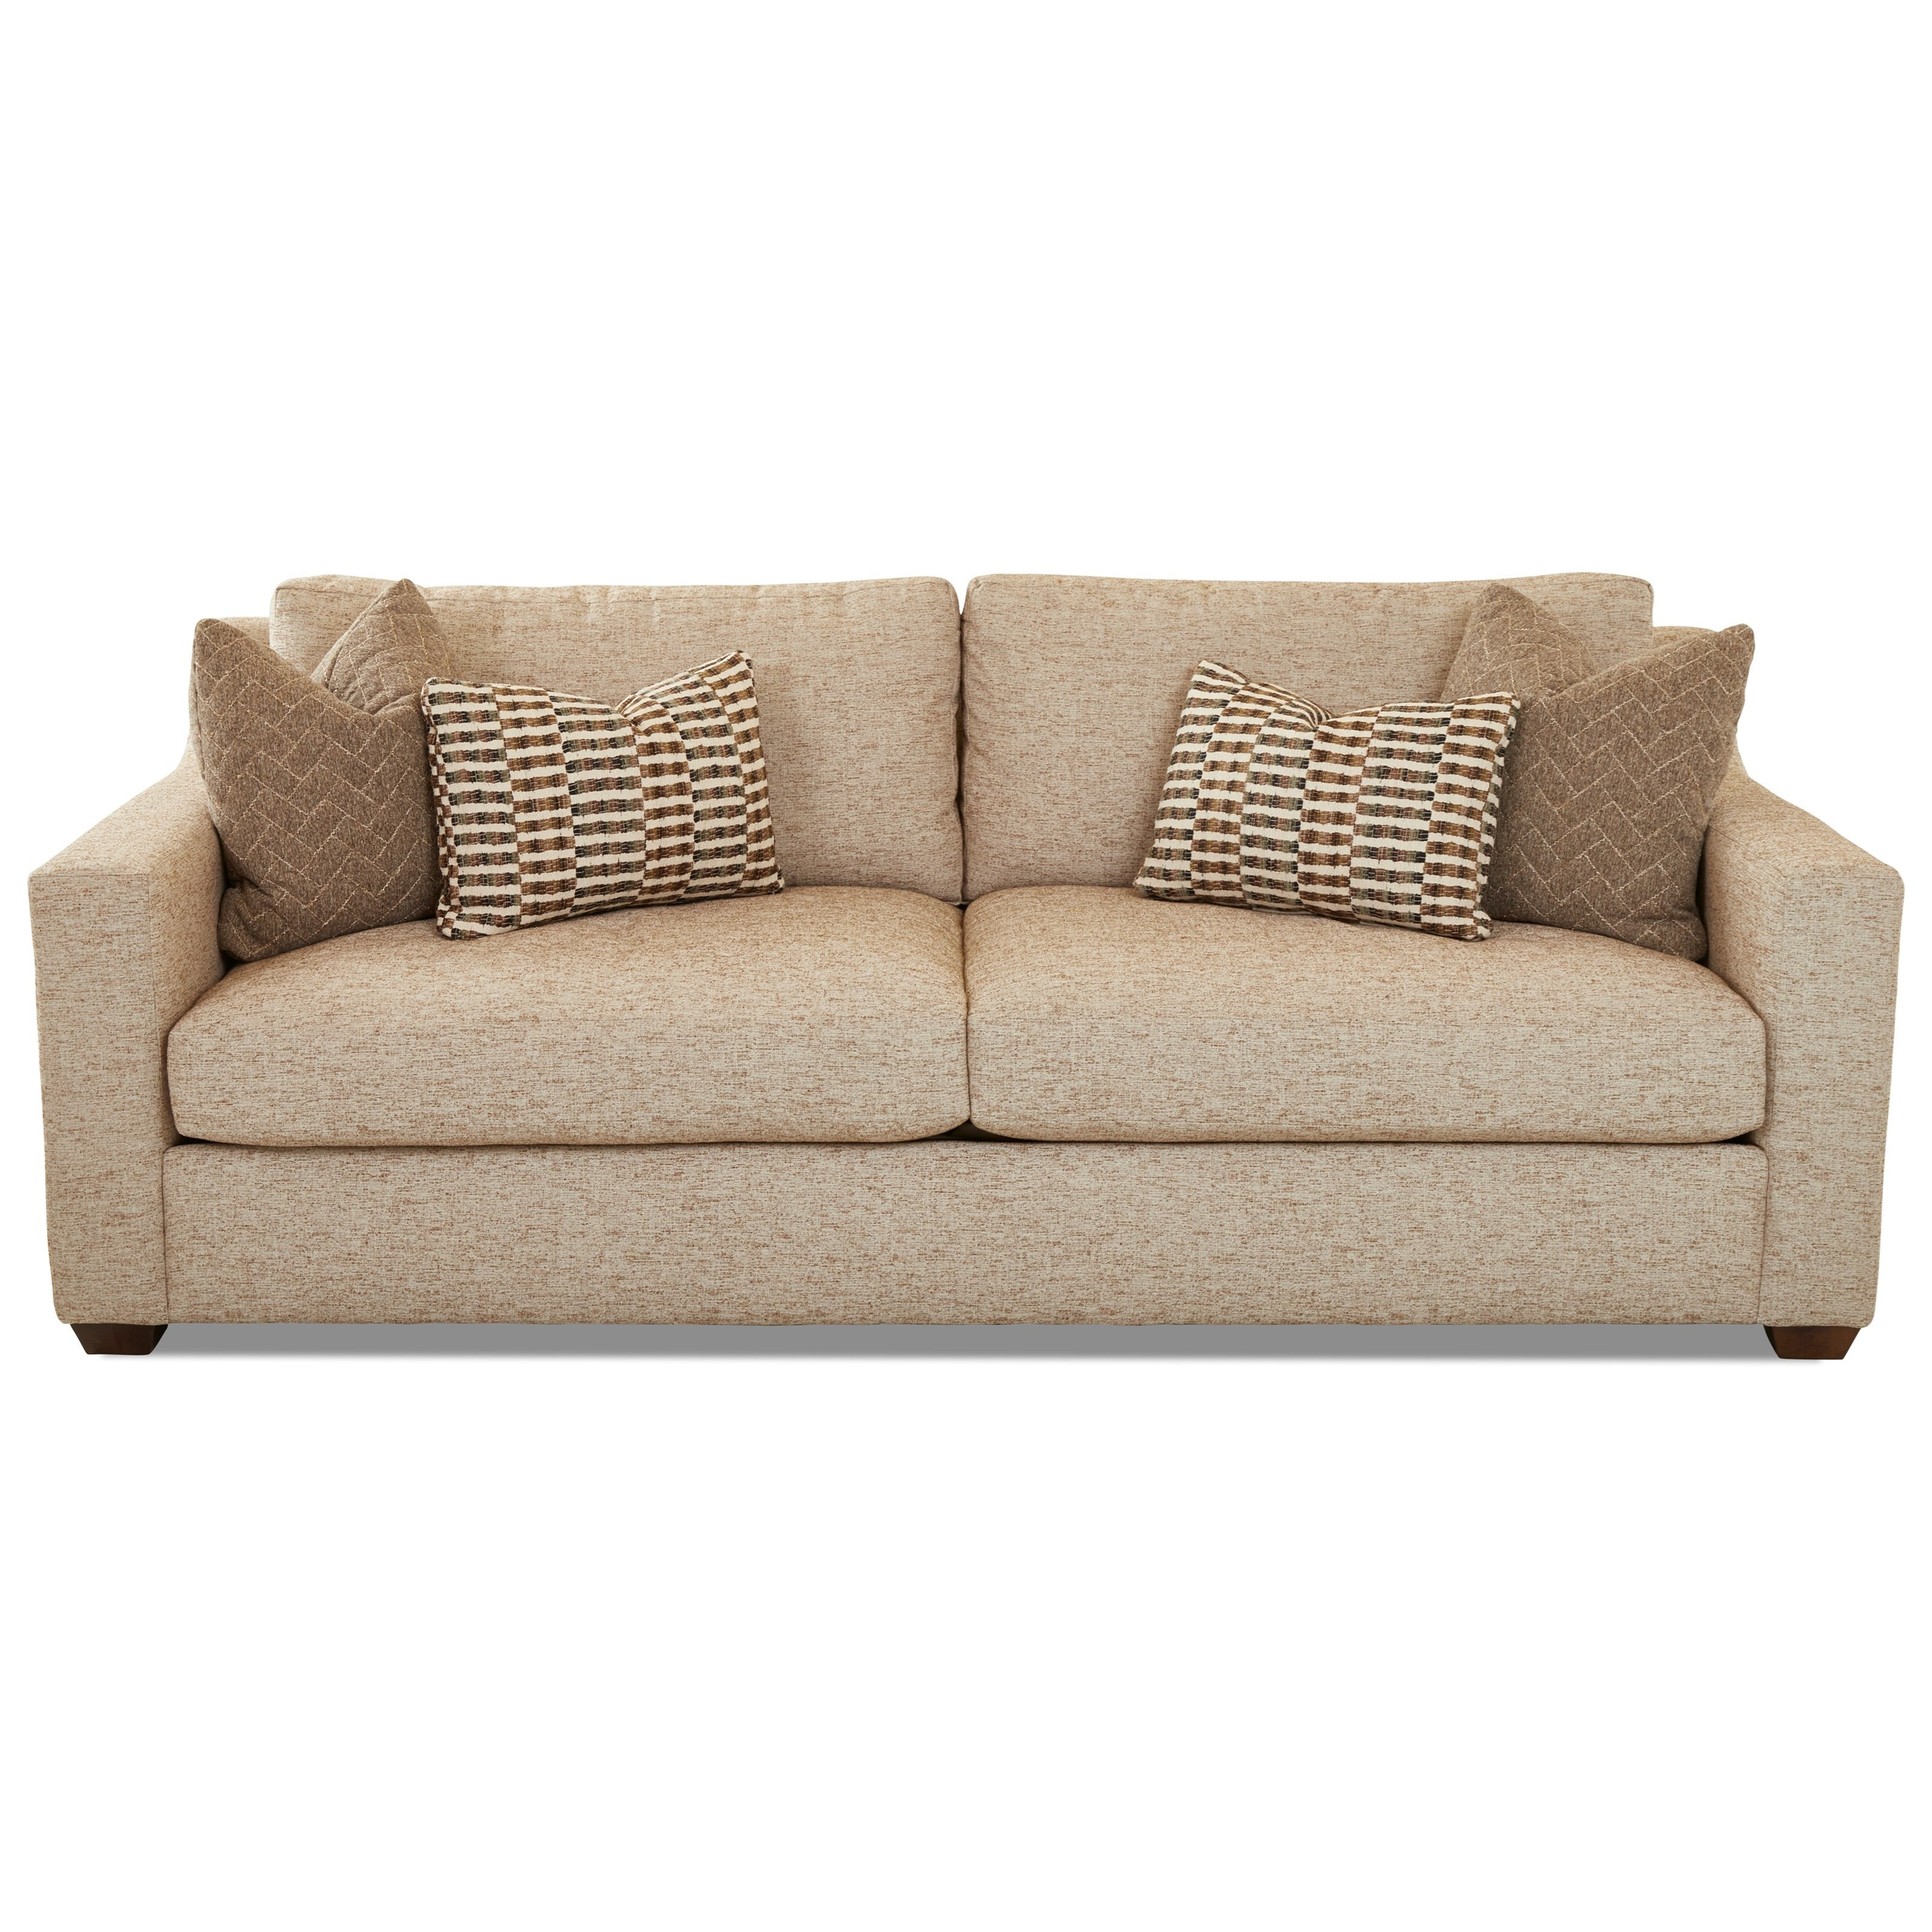 Novato Sofa by Klaussner at Northeast Factory Direct